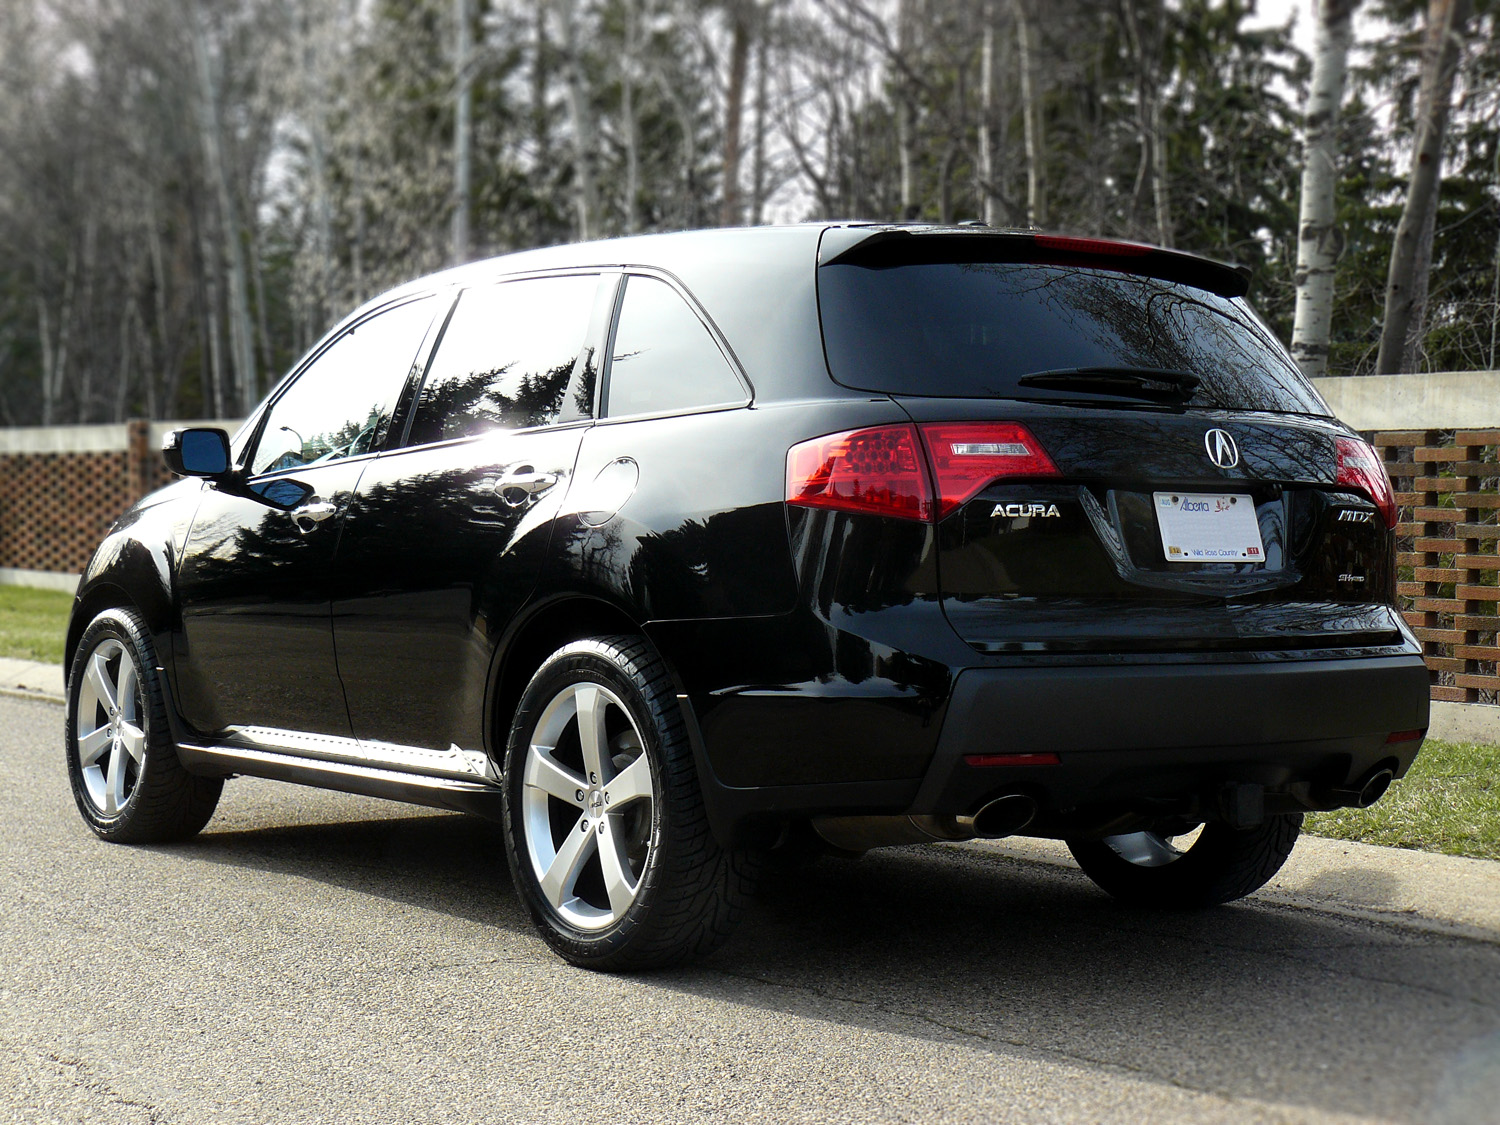 acura mdx custom wheels tsw vortex 20x8 5 et 35 tire. Black Bedroom Furniture Sets. Home Design Ideas